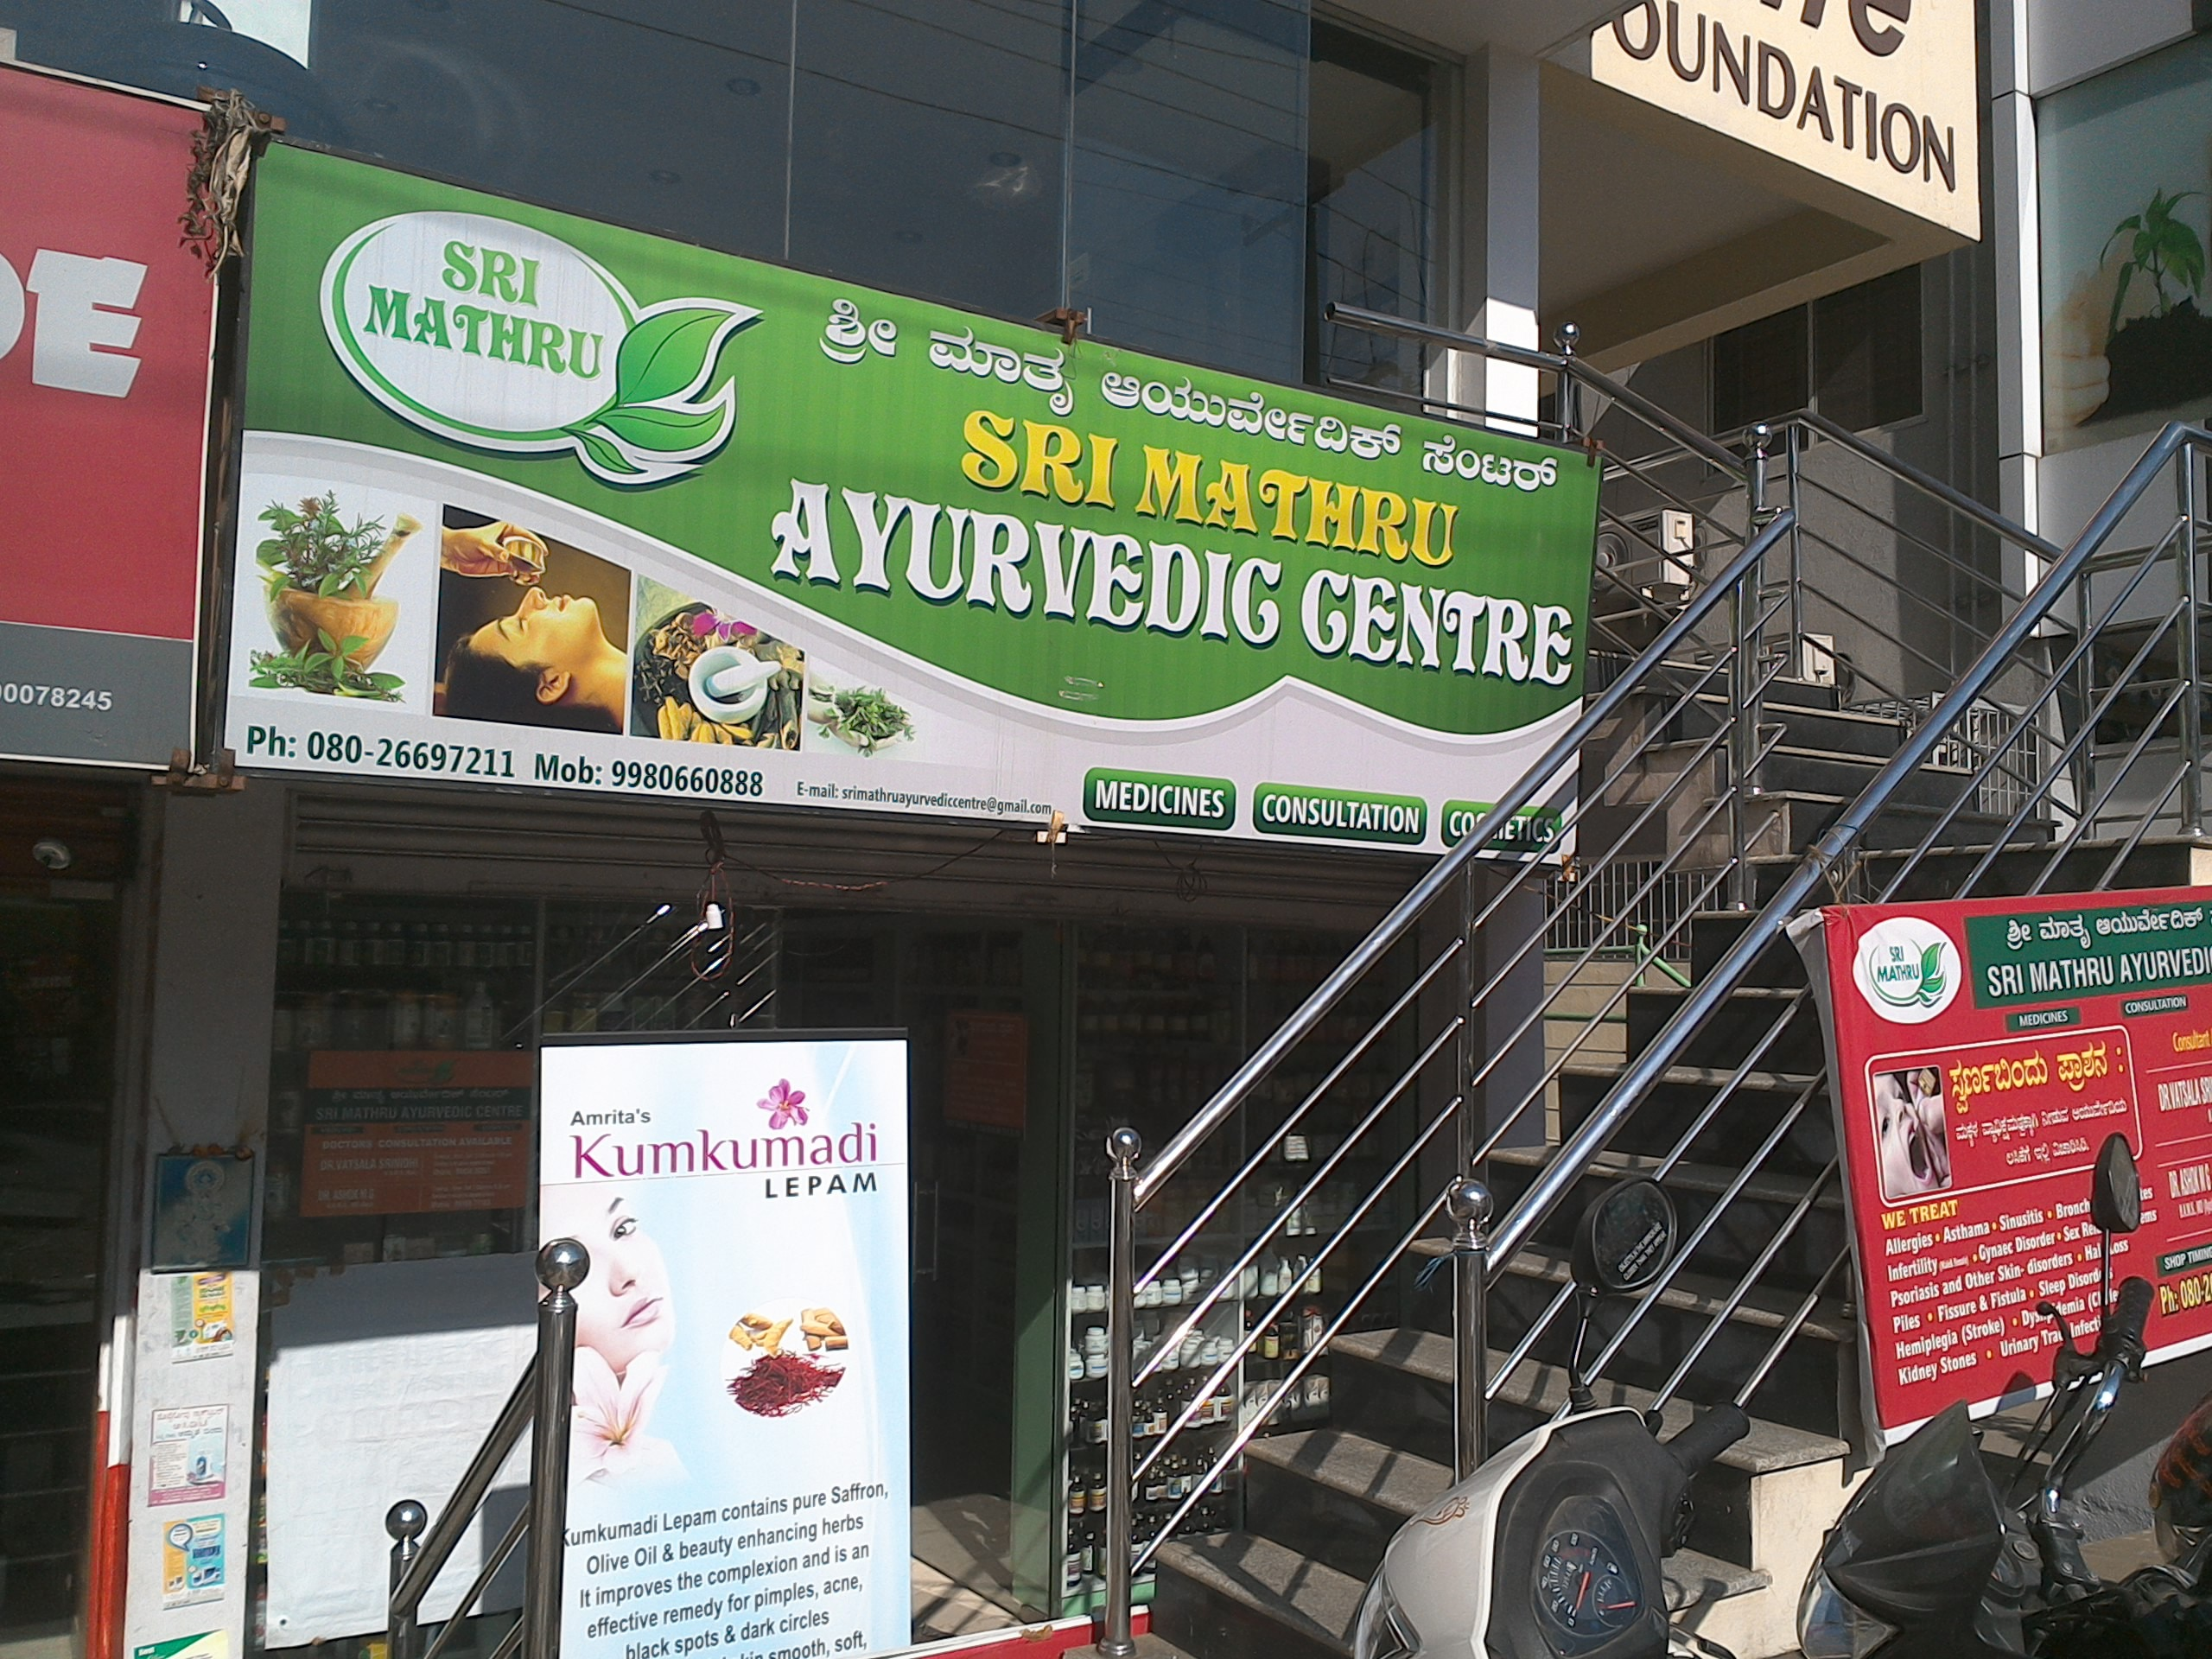 Sri Mathru Ayurvedic Centre